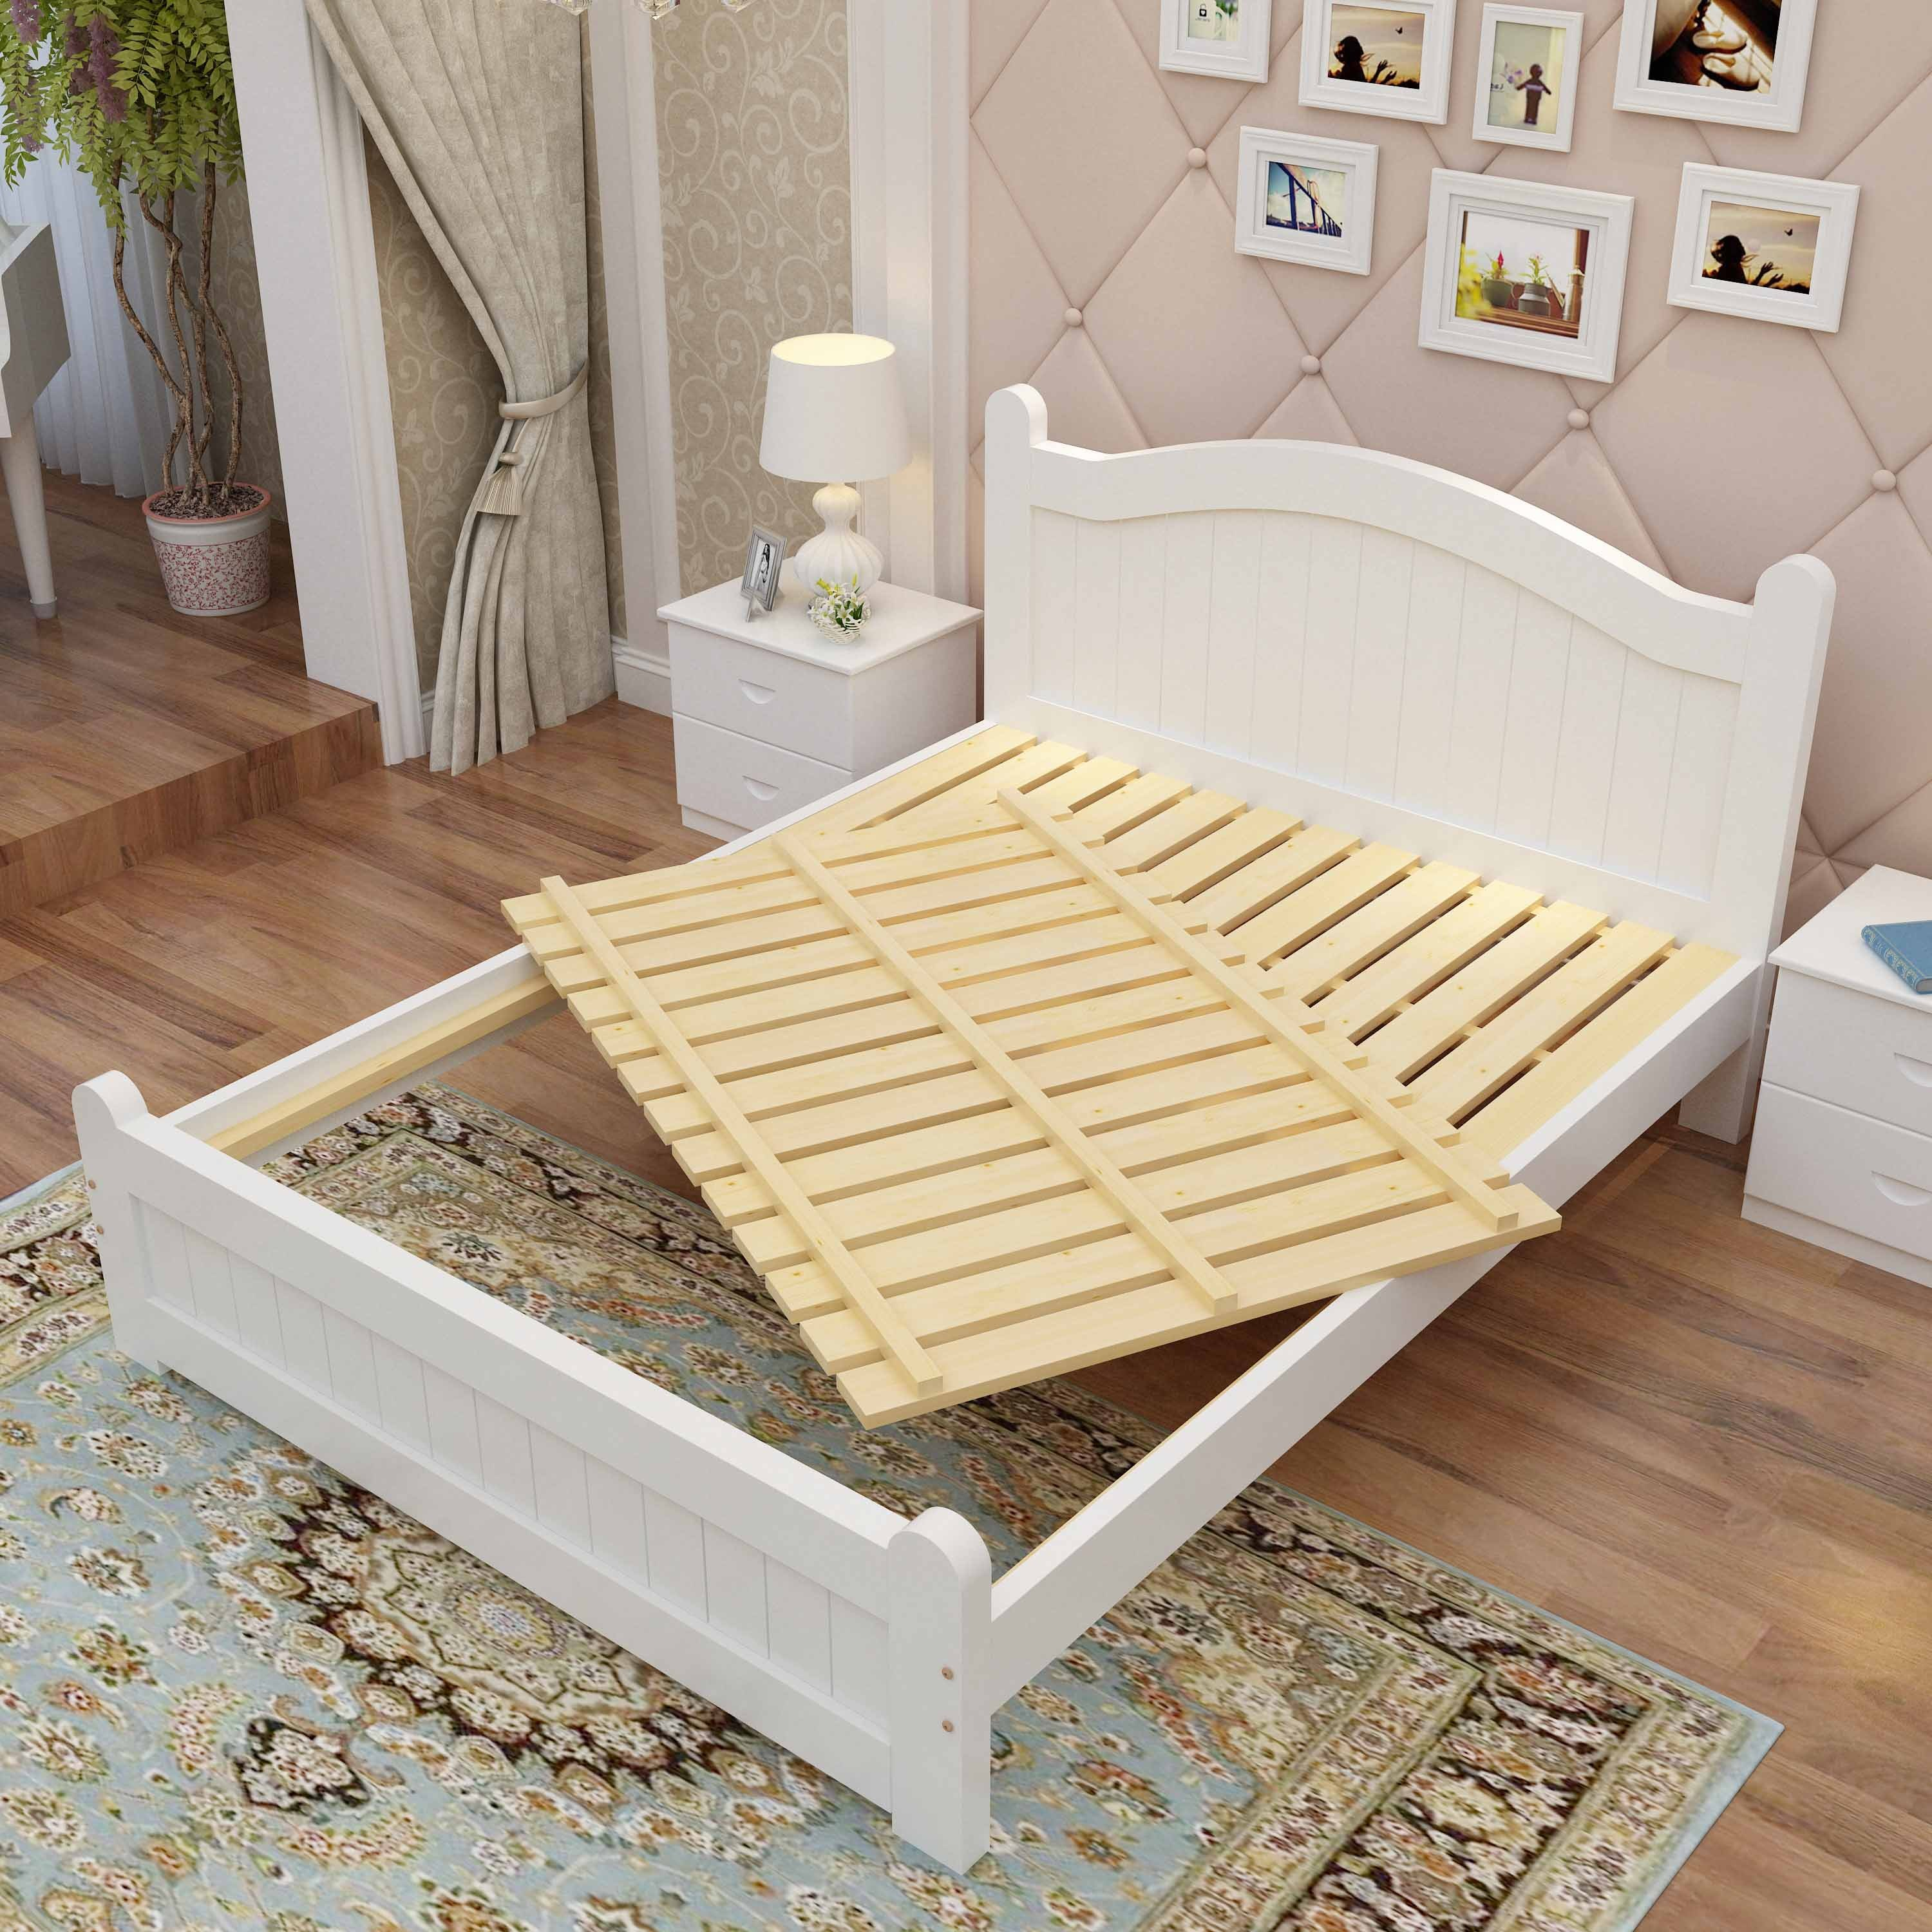 Solid wood bed, 1.8 meters double bed, 1.5m bed master bedroom, simple modern Japanese style, soft Nordic bed